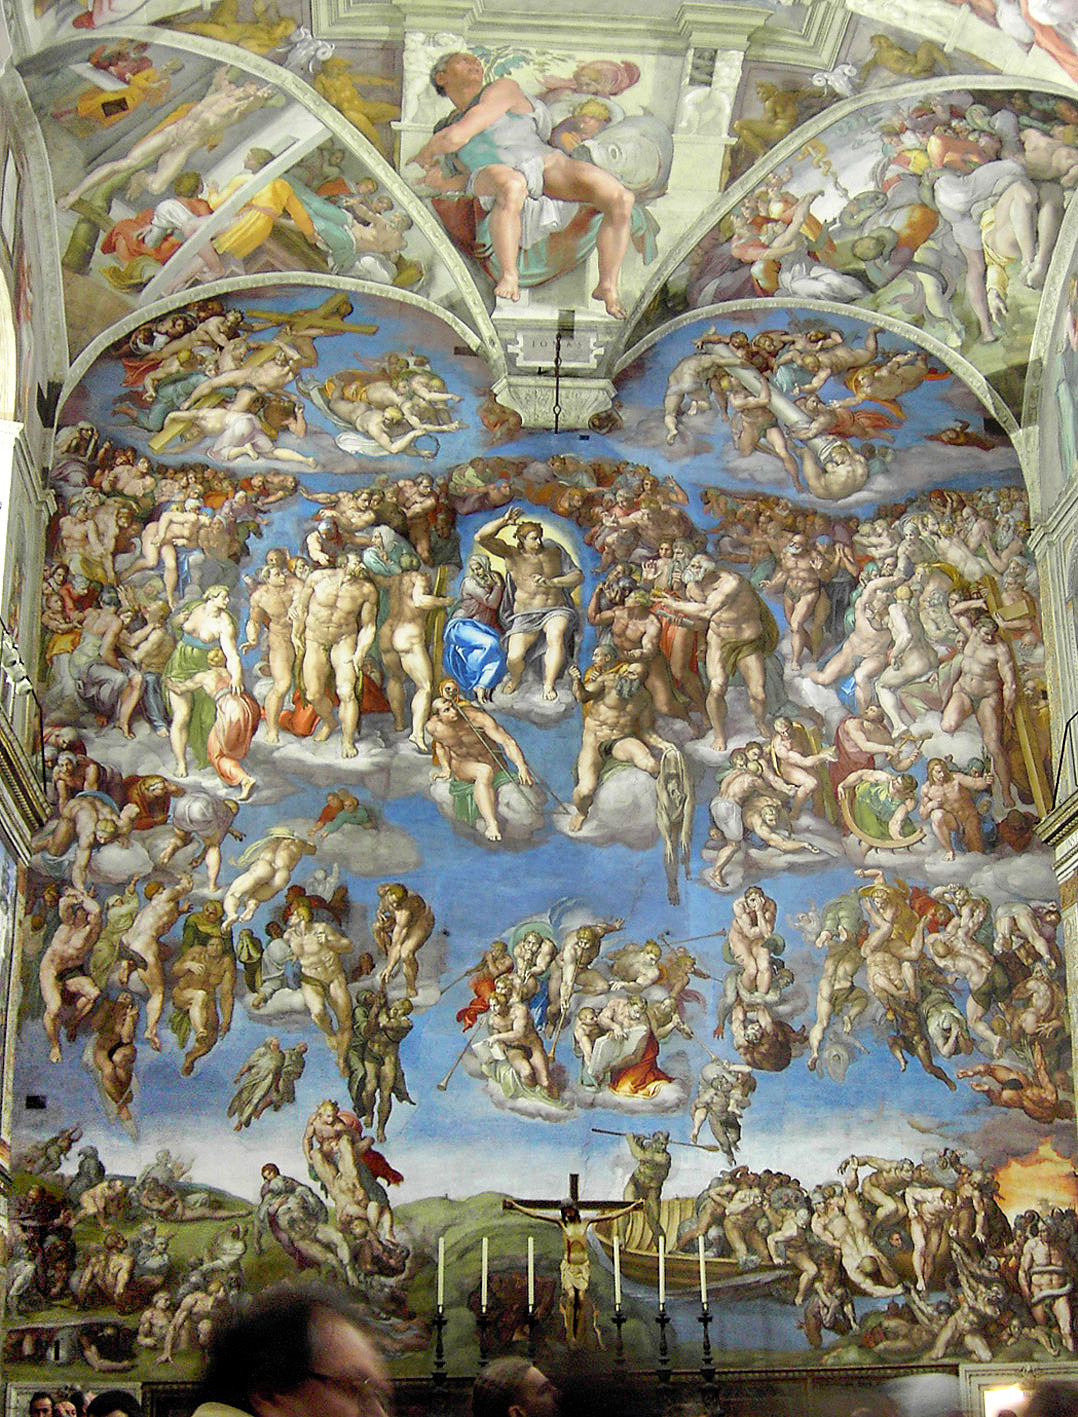 michelangelo buonarrotis the last judgement essay Sistine chapel, christian art, final judgment - michelangelo's fresco the last  judgment  essay about michelangelo's last judgment- barnes critique  his  father was ludovico buonarroti, a florentine official with connections to the ruling .